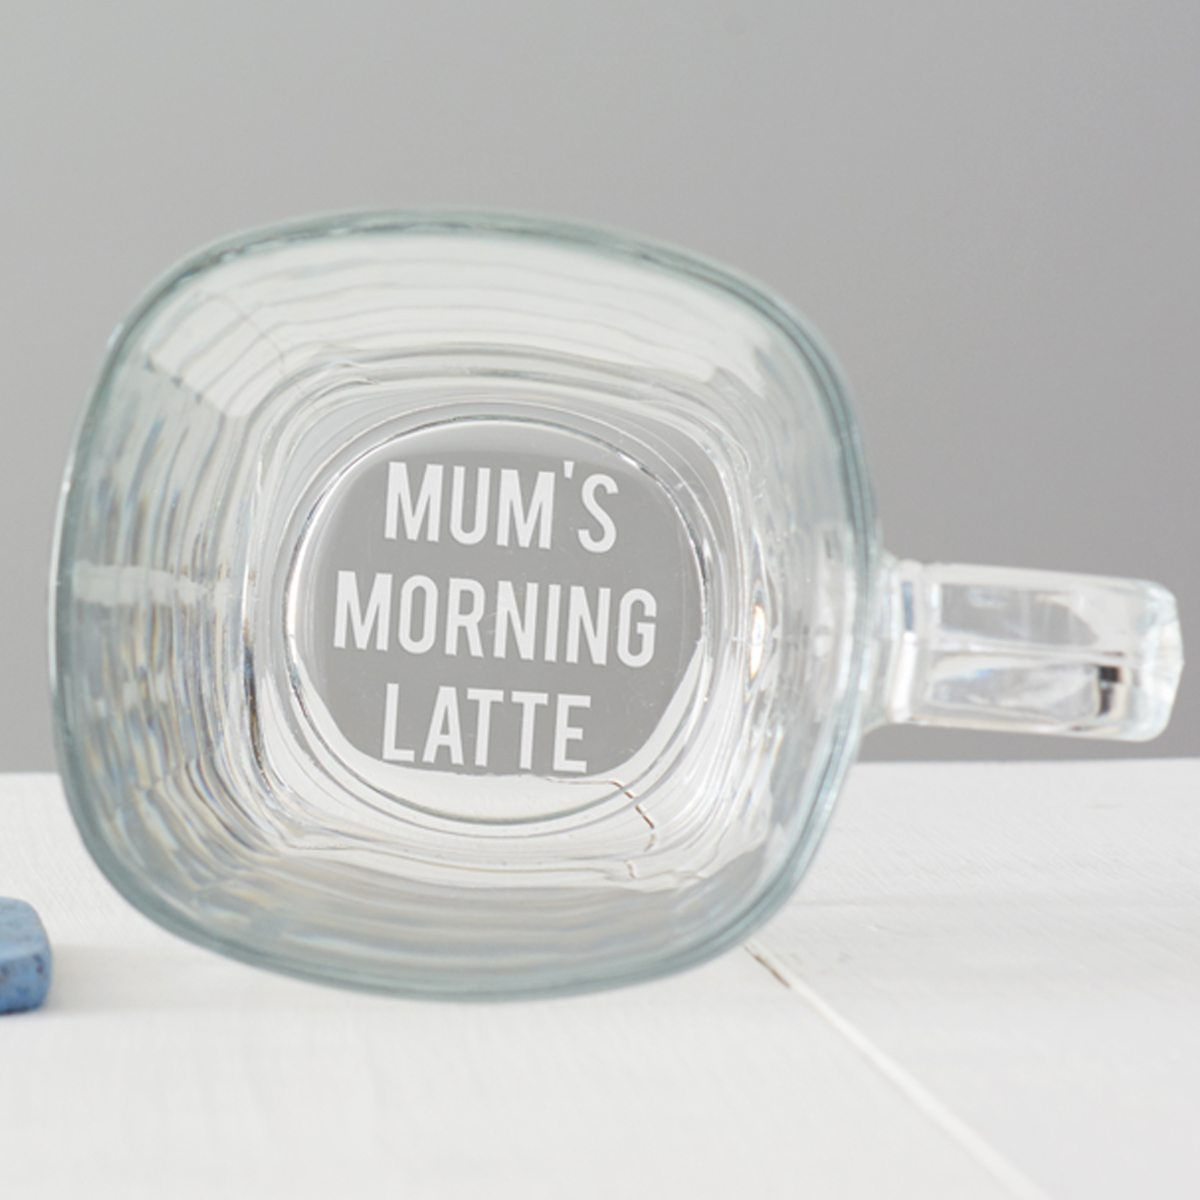 Mum's Morning Latte Mug